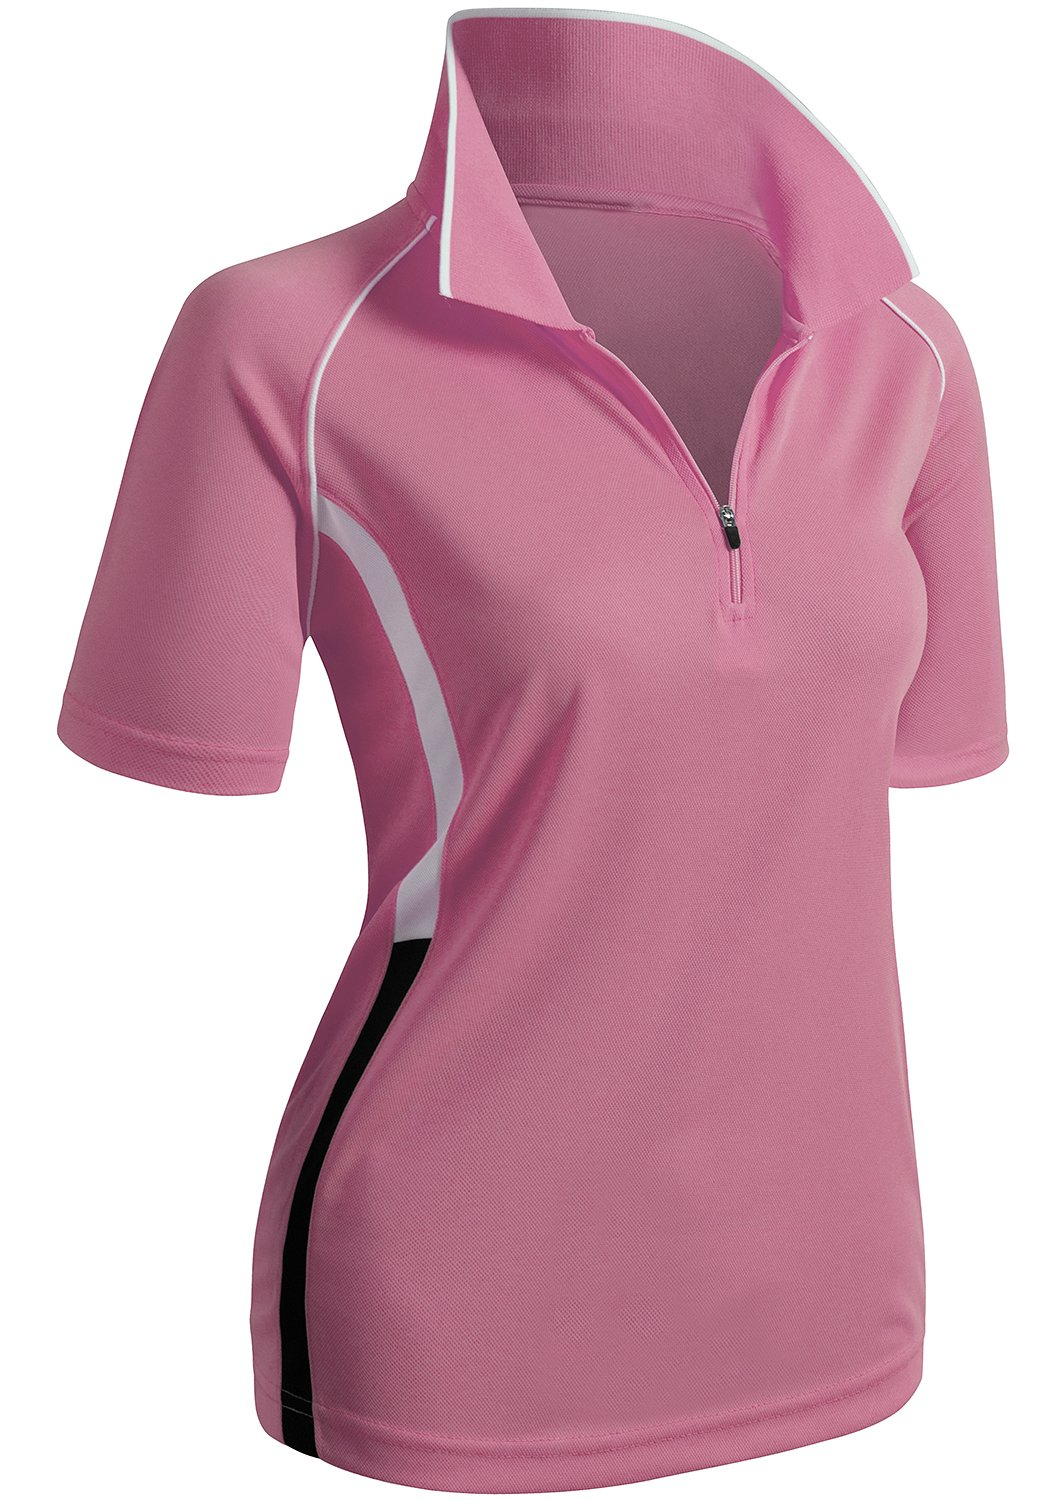 CLOVERY Quick Drying Active Wear Short Sleeve Zipup POLO Shirt PINK US M/Tag M